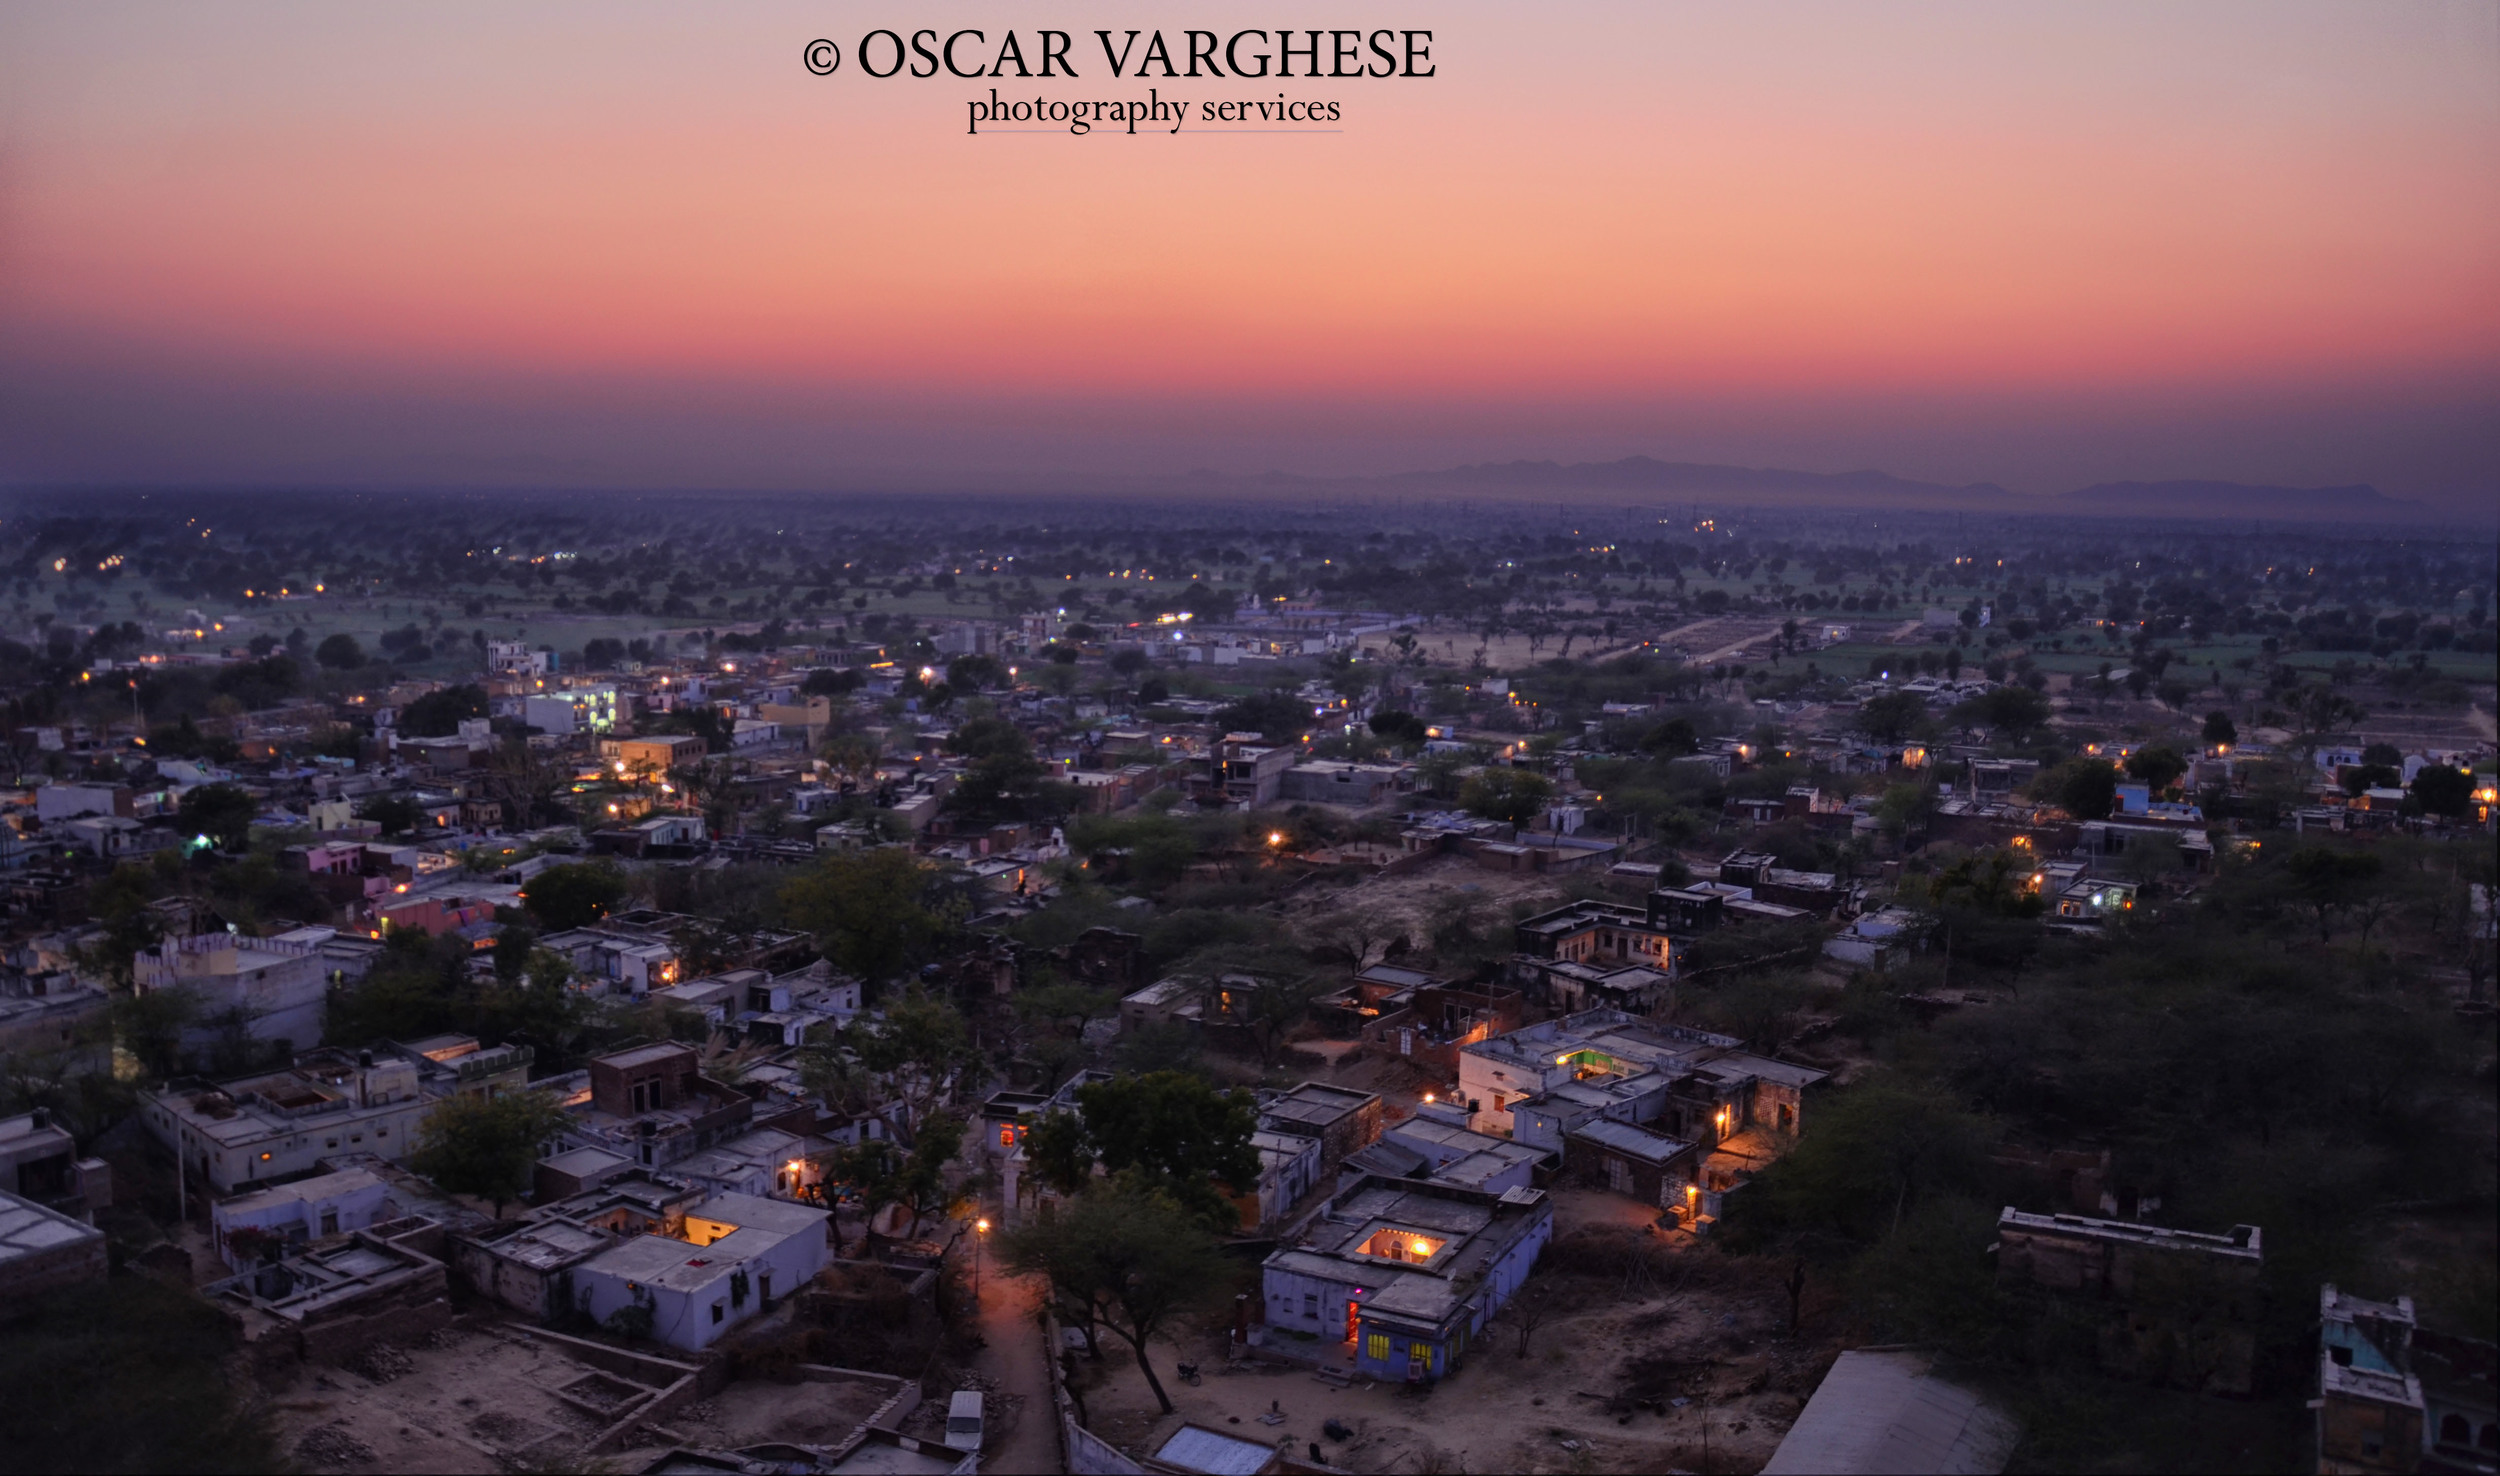 A Village in Rajasthan at Twilight